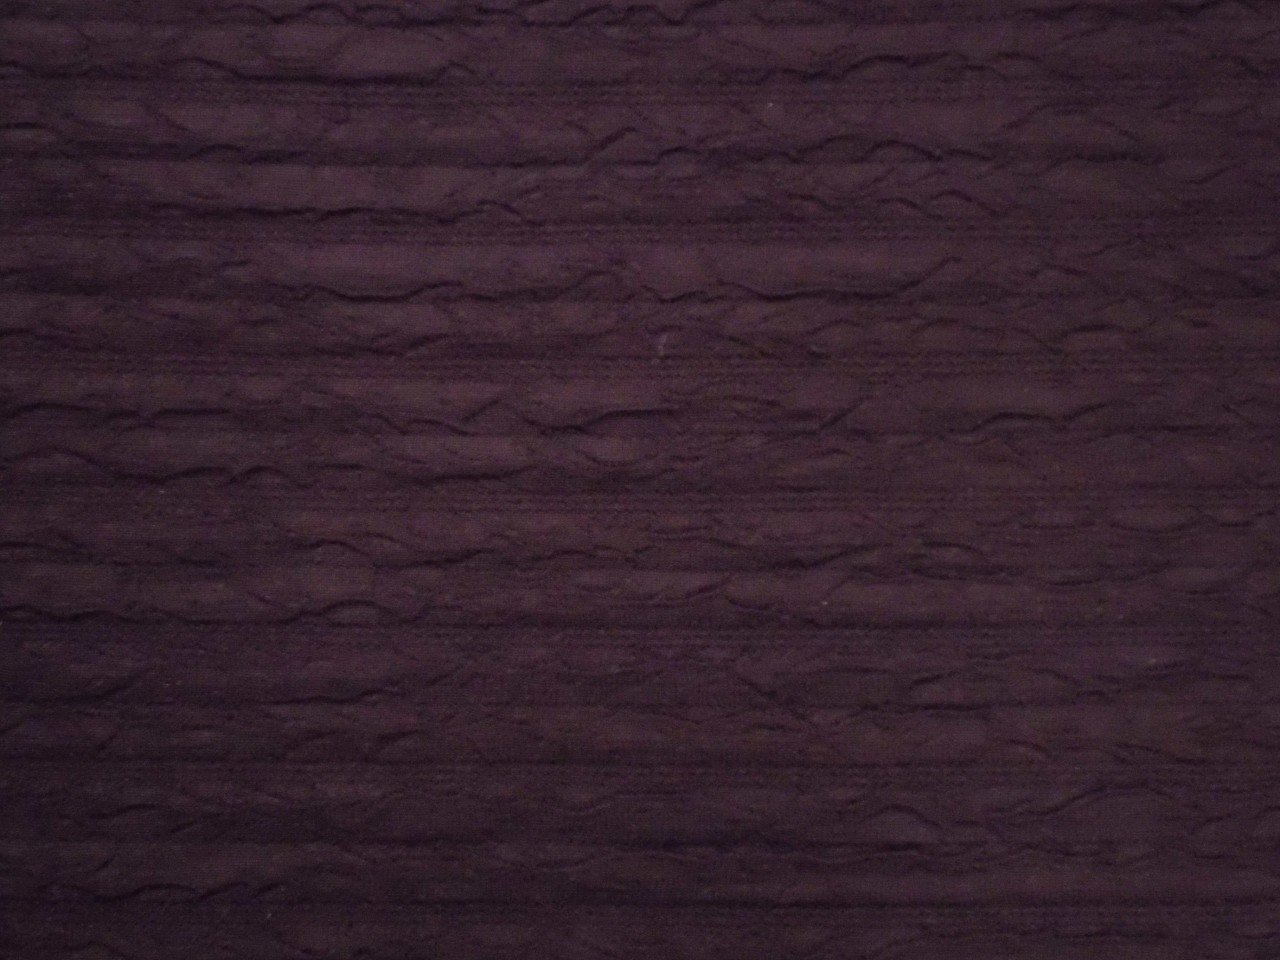 Crinkle Doubleknit Polyester & Lycra in Wineberry